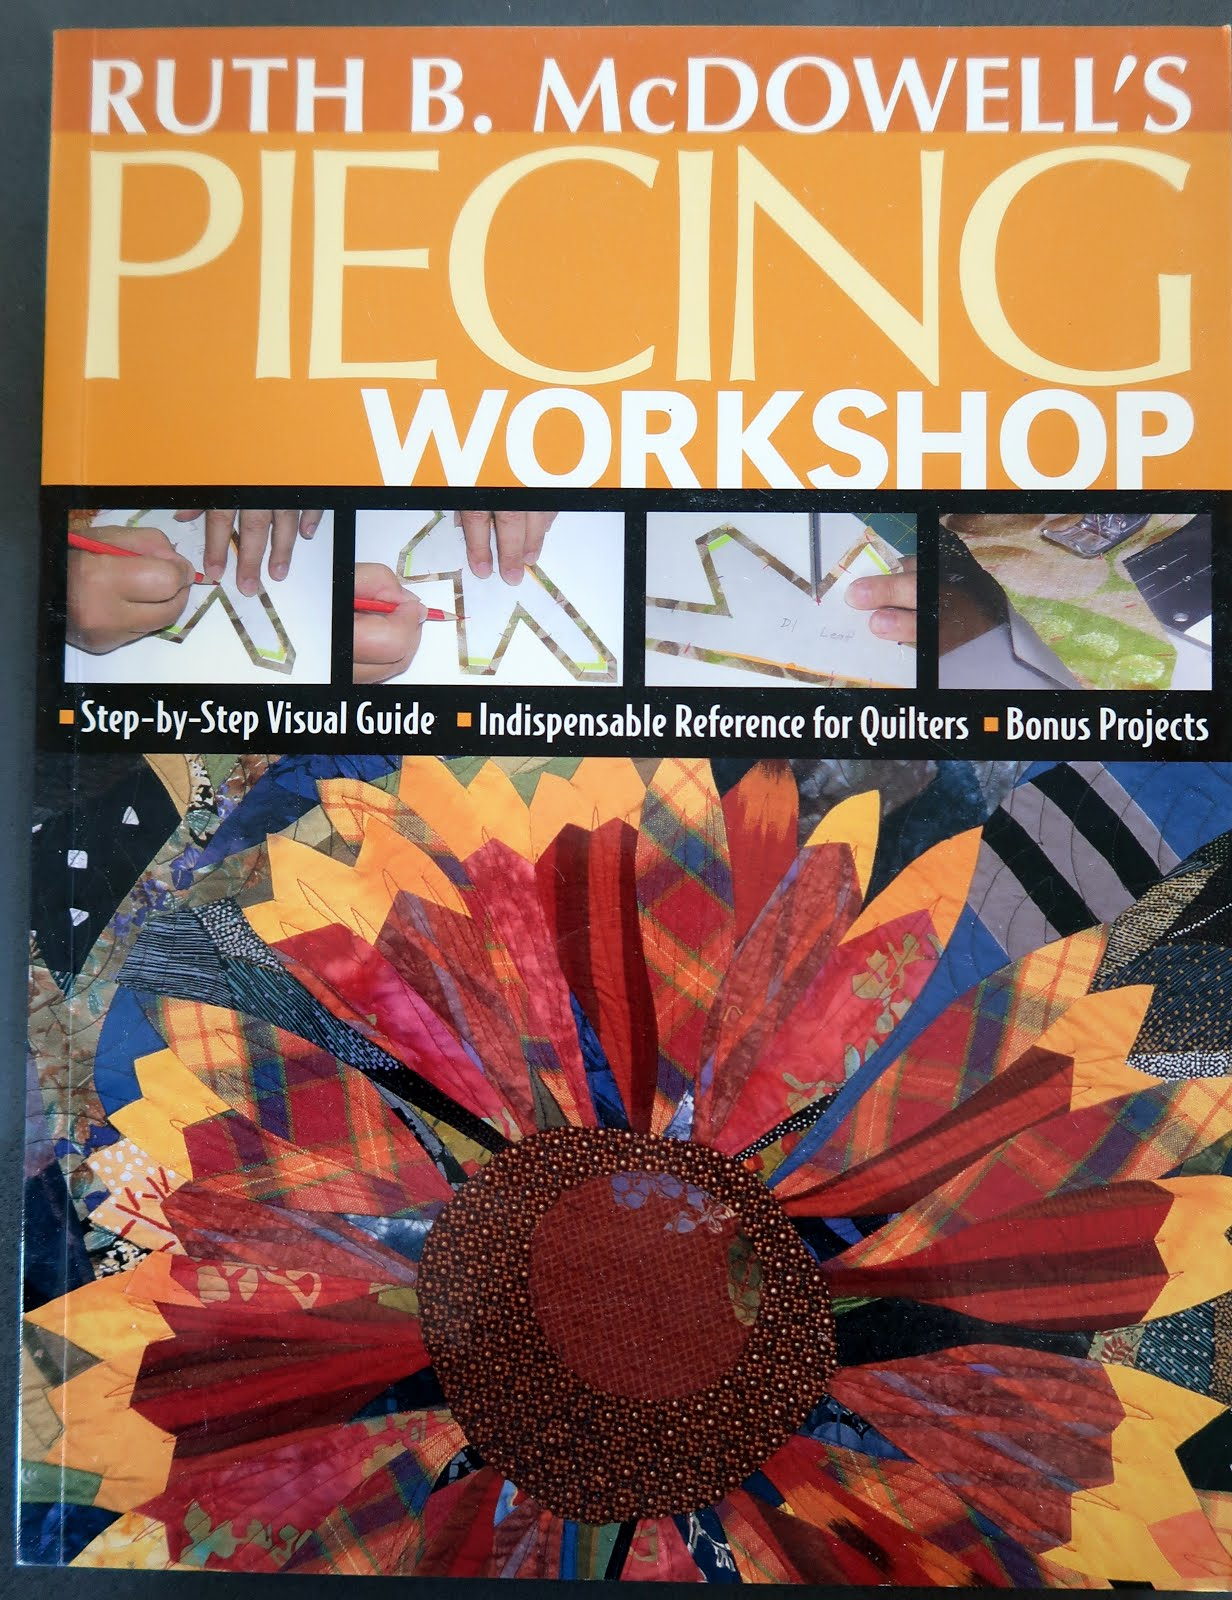 Only $12.99! Ruth McDowell's Piecing Workshop (click!)